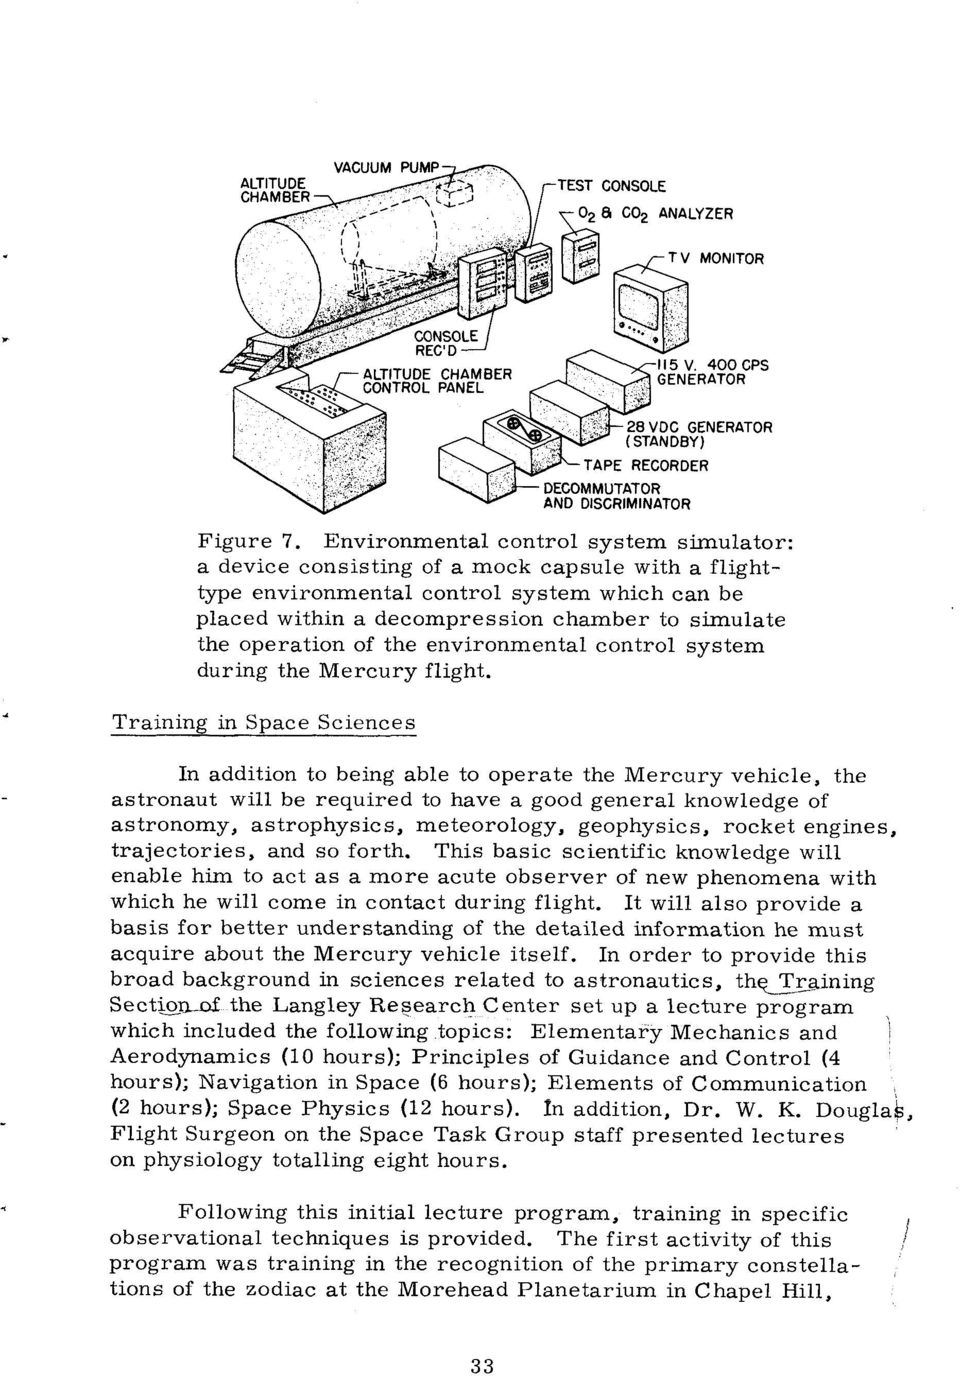 operation of the environmental control system during the Mercury flight.